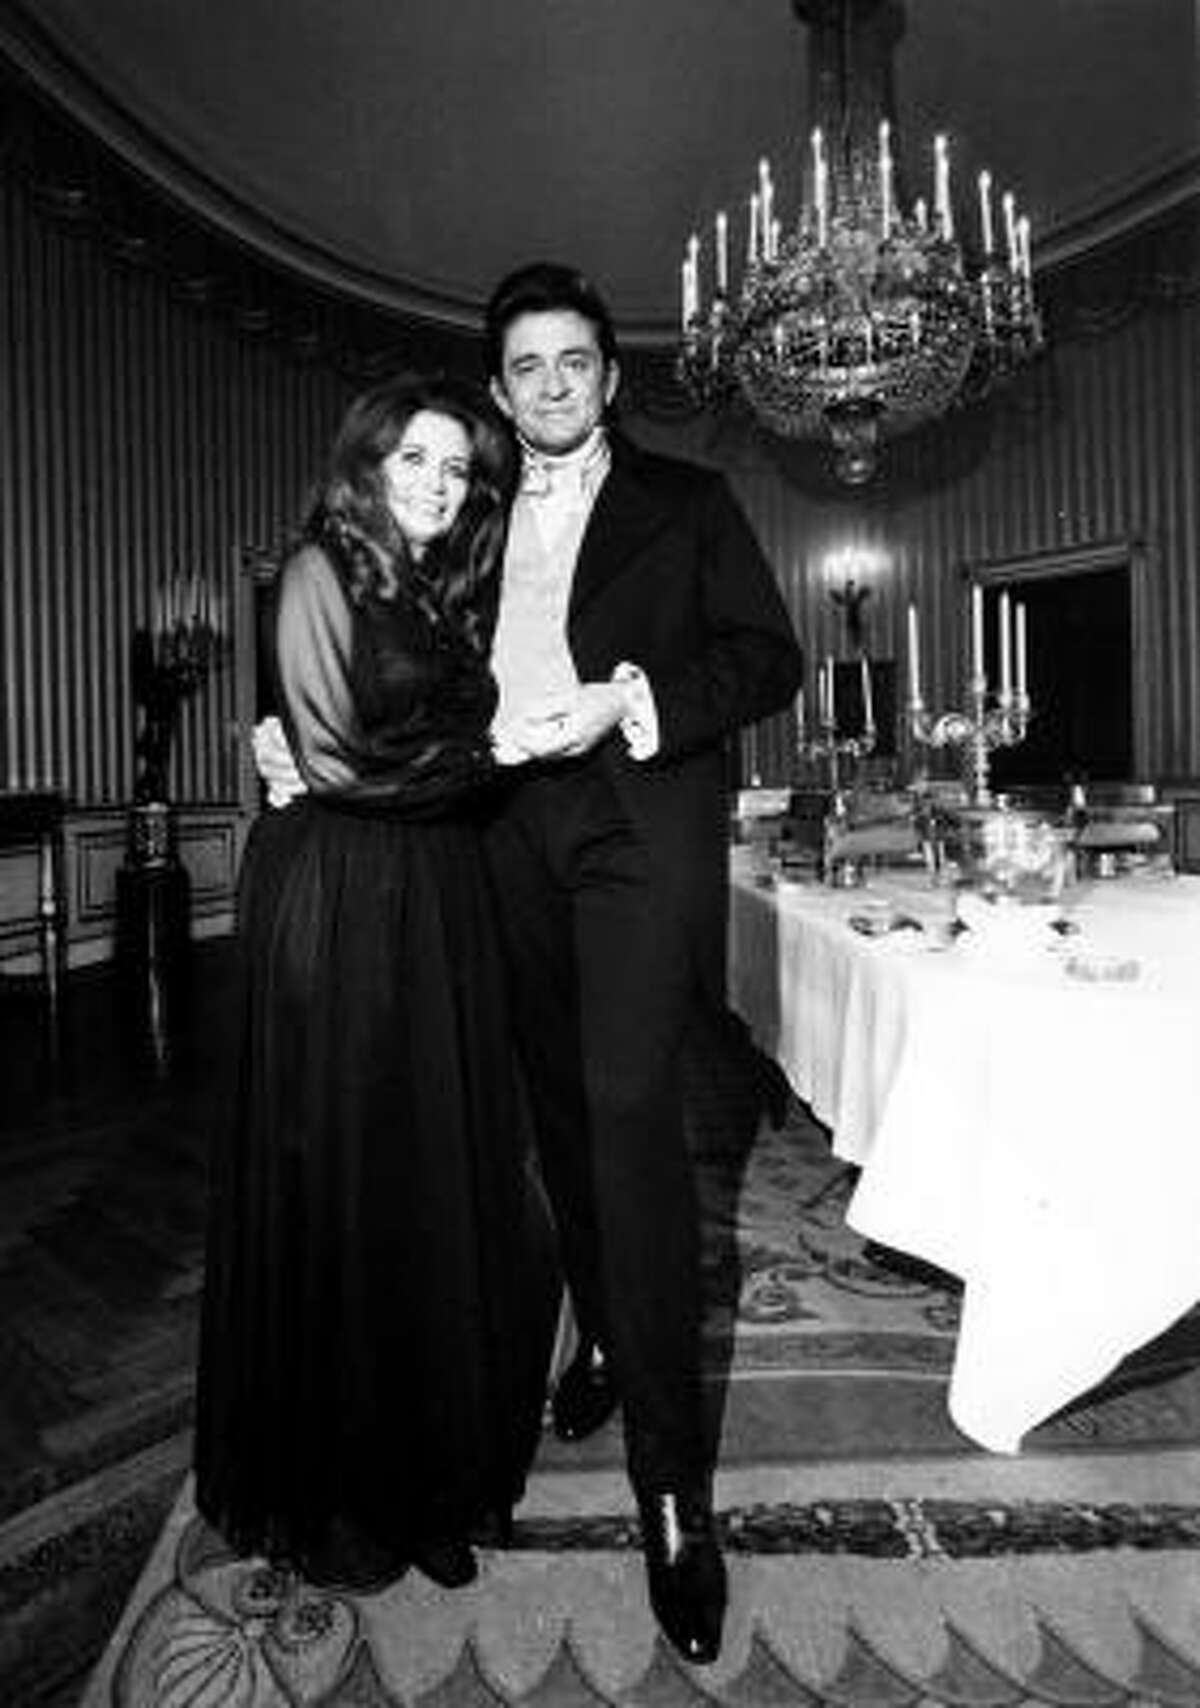 Cash met June Carter at the Grand Ole Opry in 1968. He proposed to her multiple times, but she refused.